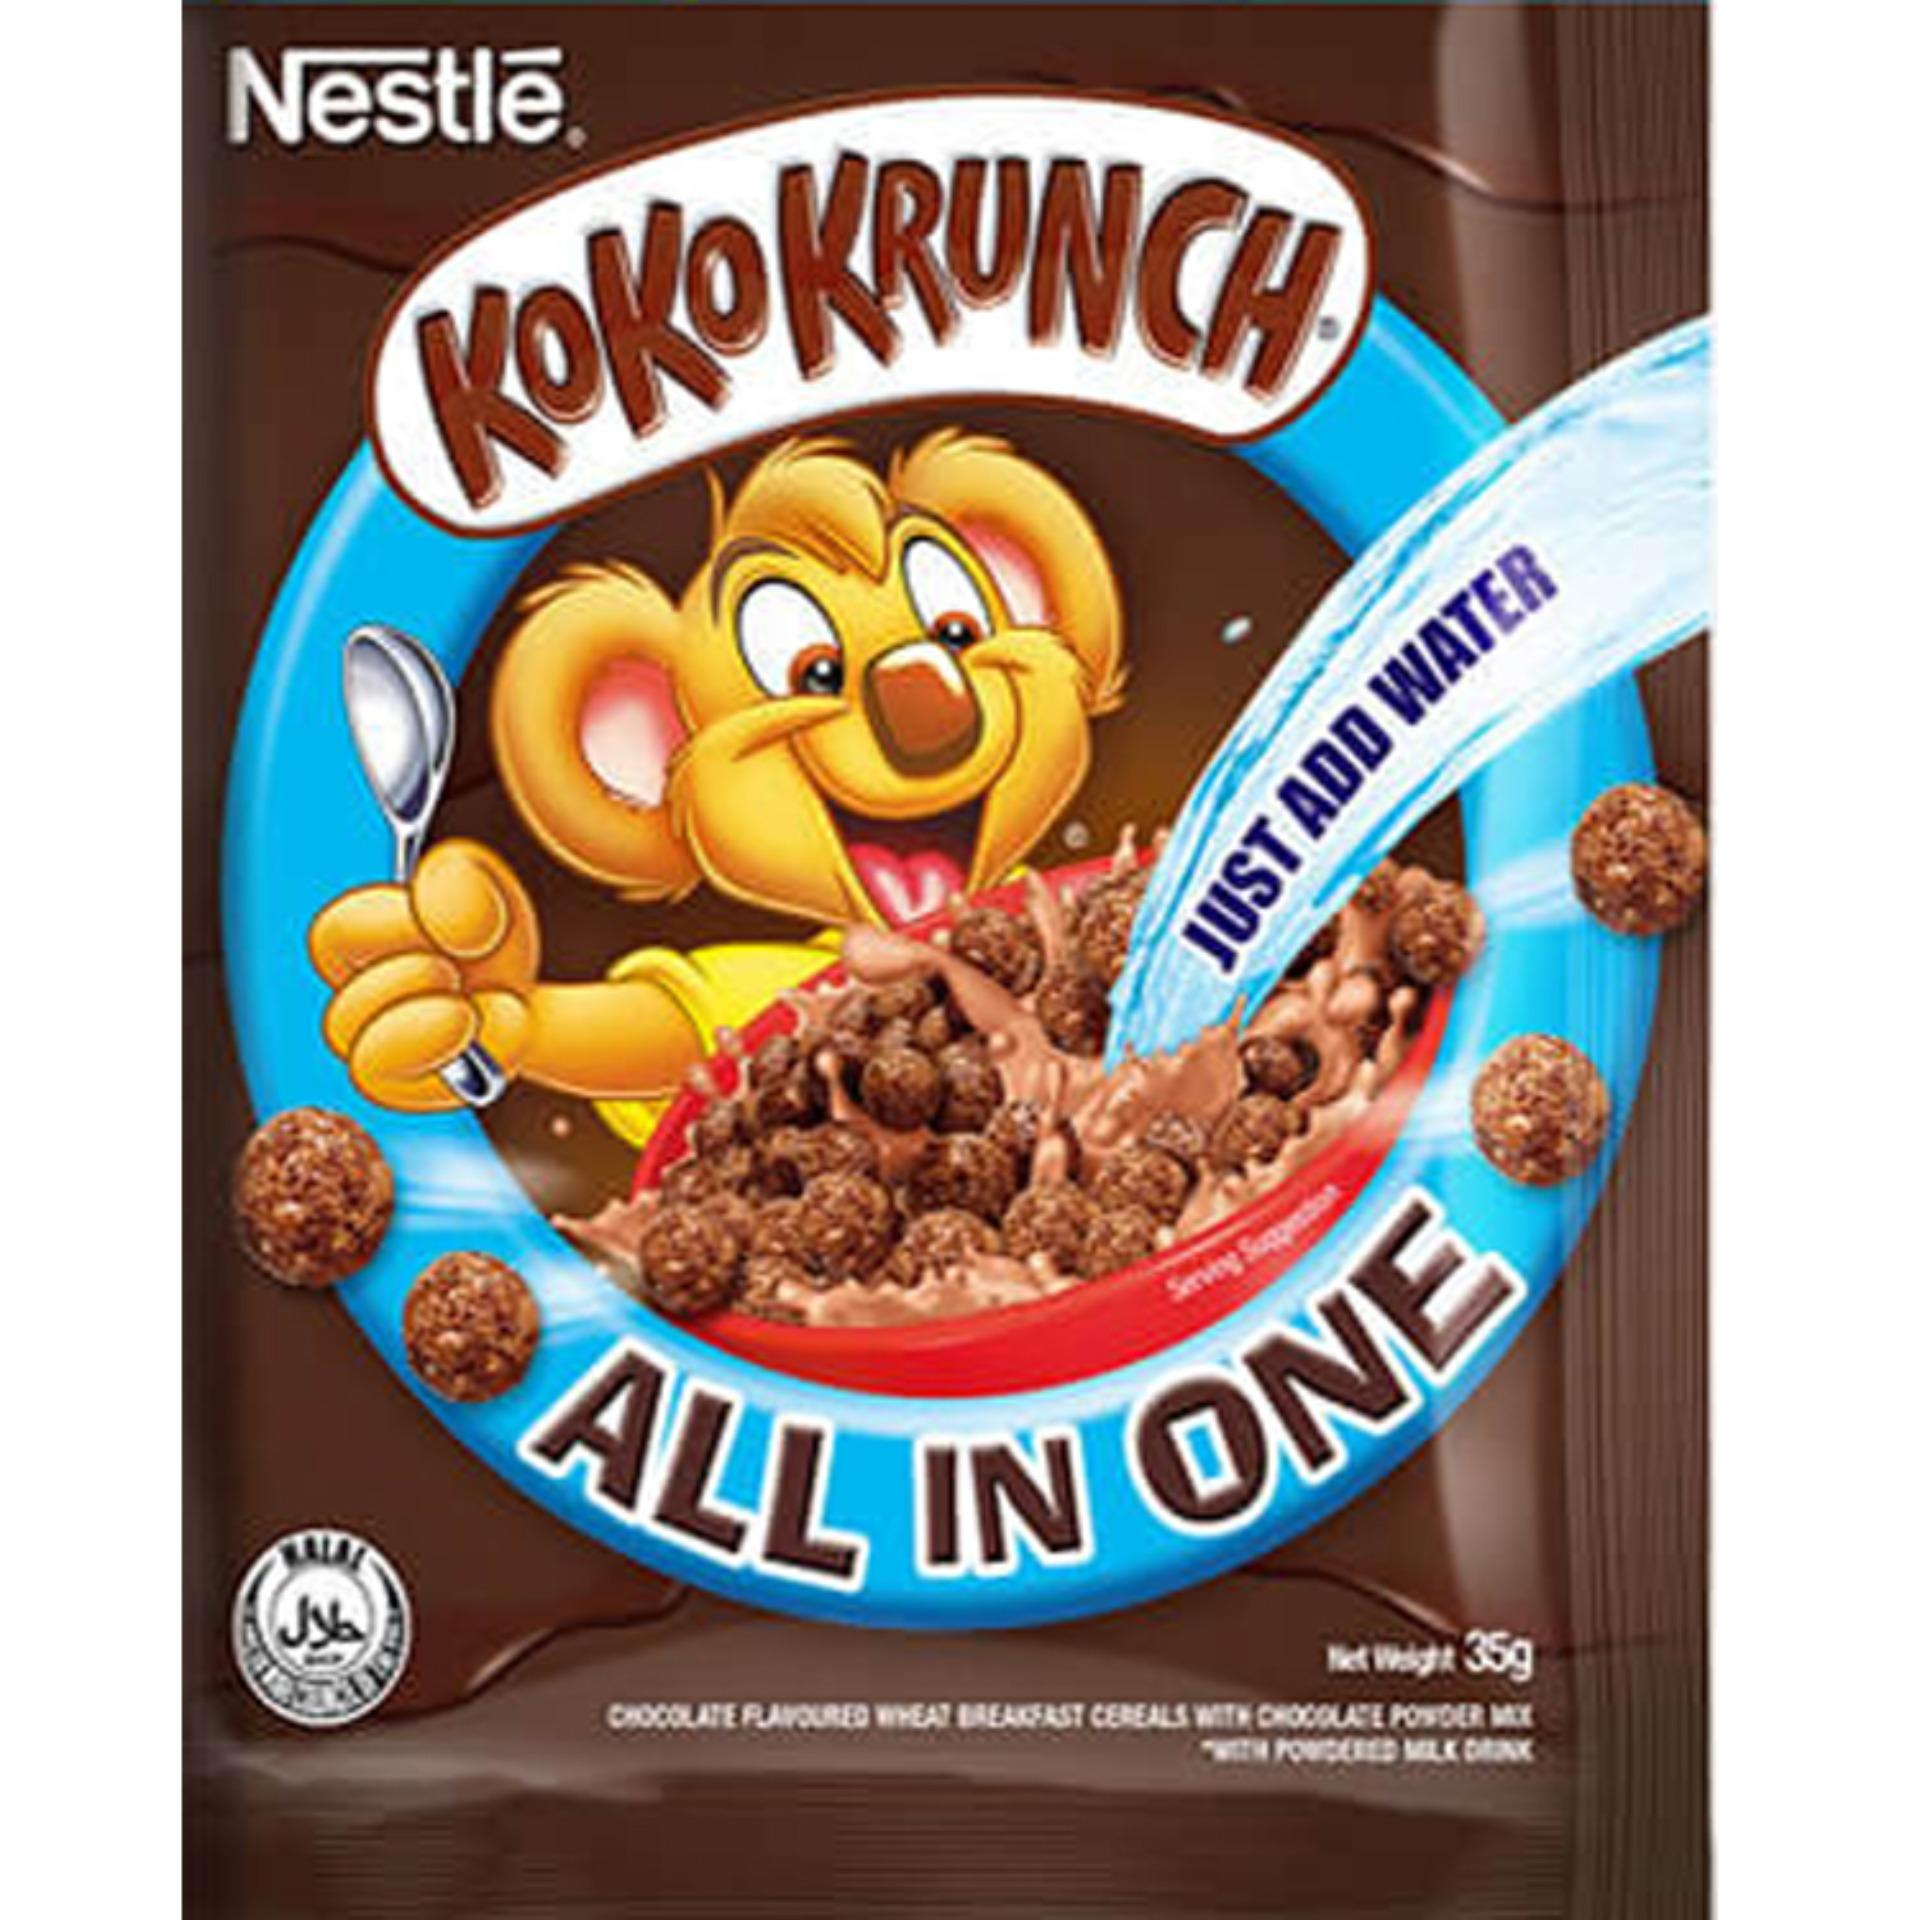 Koko krunch philippines koko krunch price list breakfast cereal koko krunch all in one 35g pack of 12 ccuart Choice Image